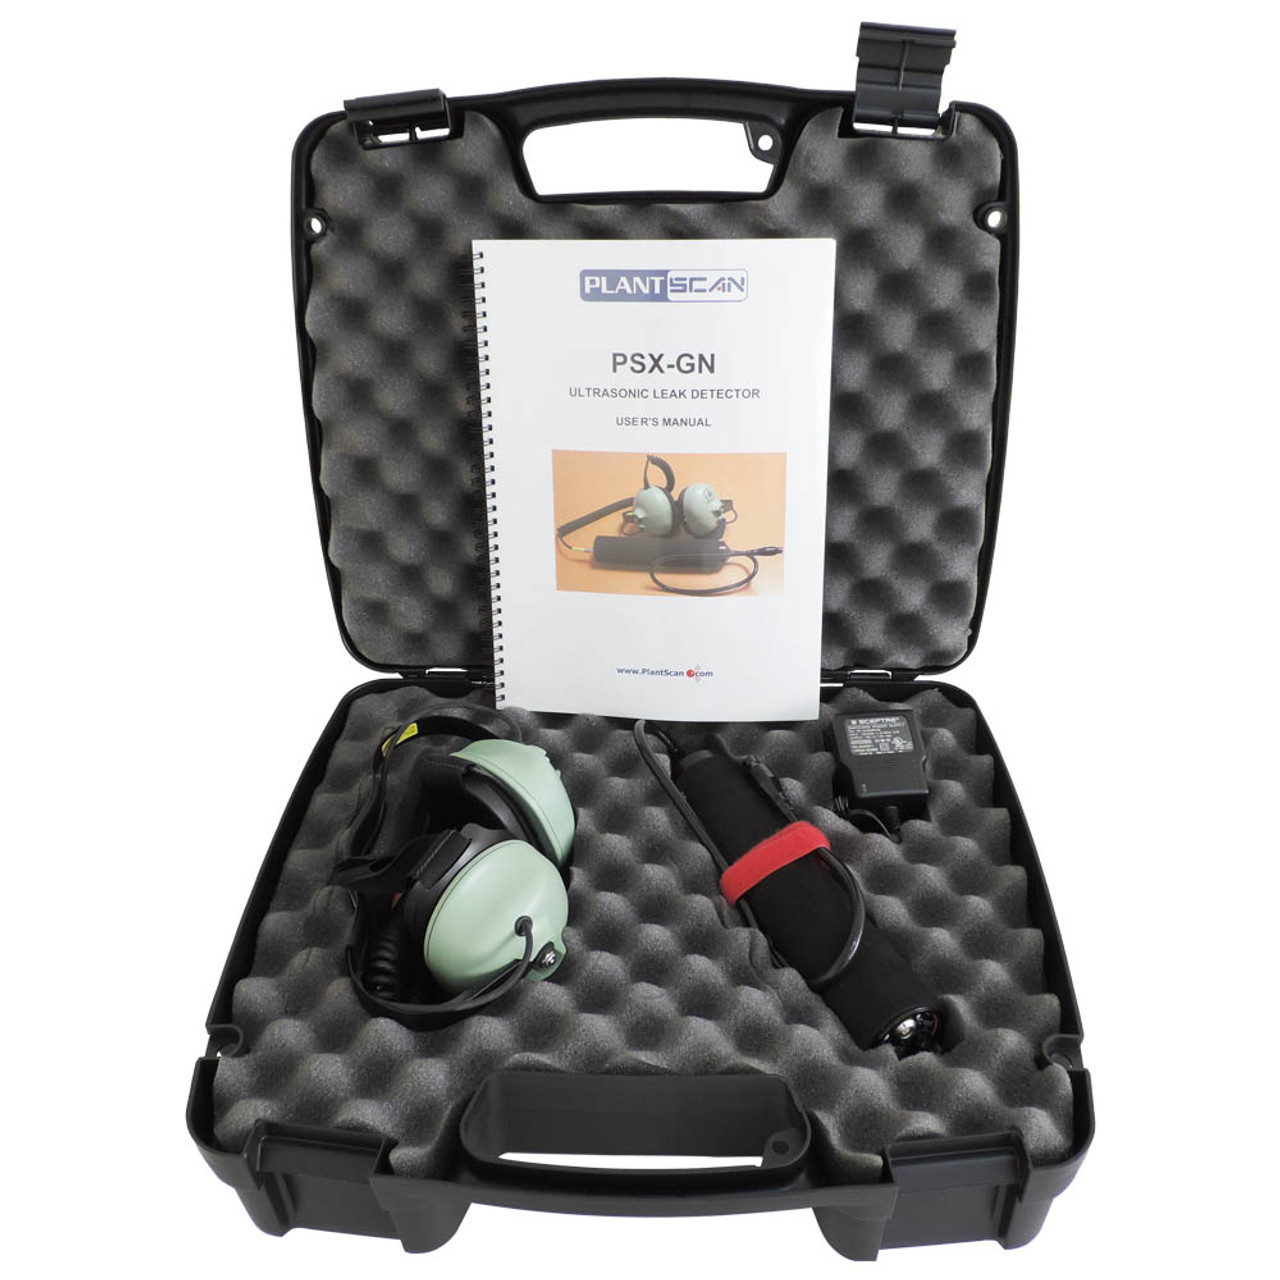 PSX-GN Ultrasonic Leak Detector - Complete Kit